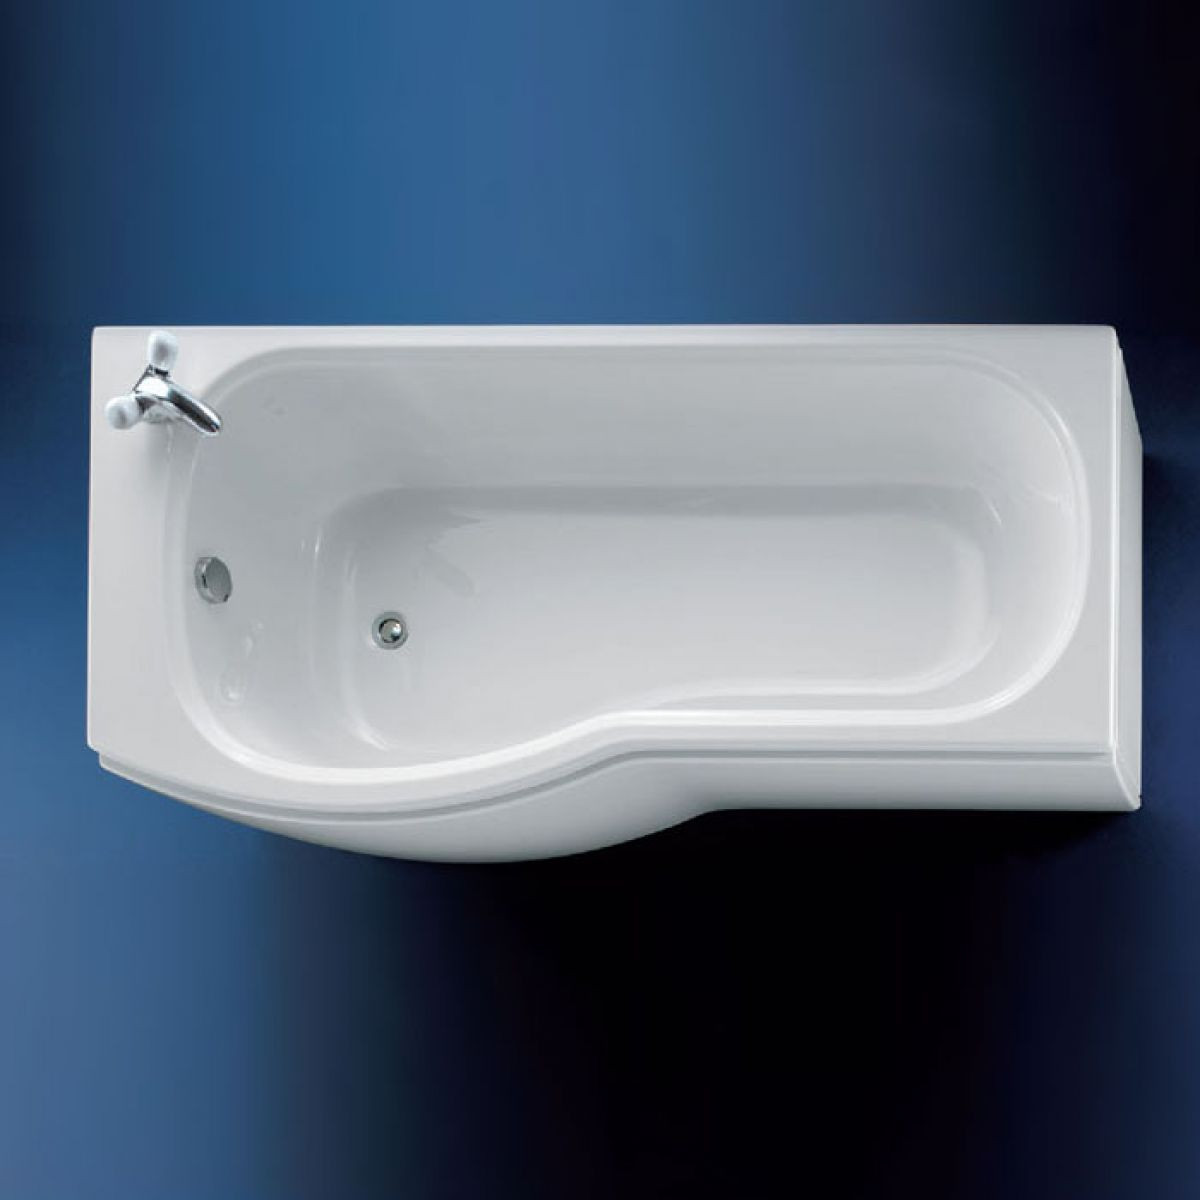 ideal standard alto shower bath uk bathrooms ideal standard alto shower bath